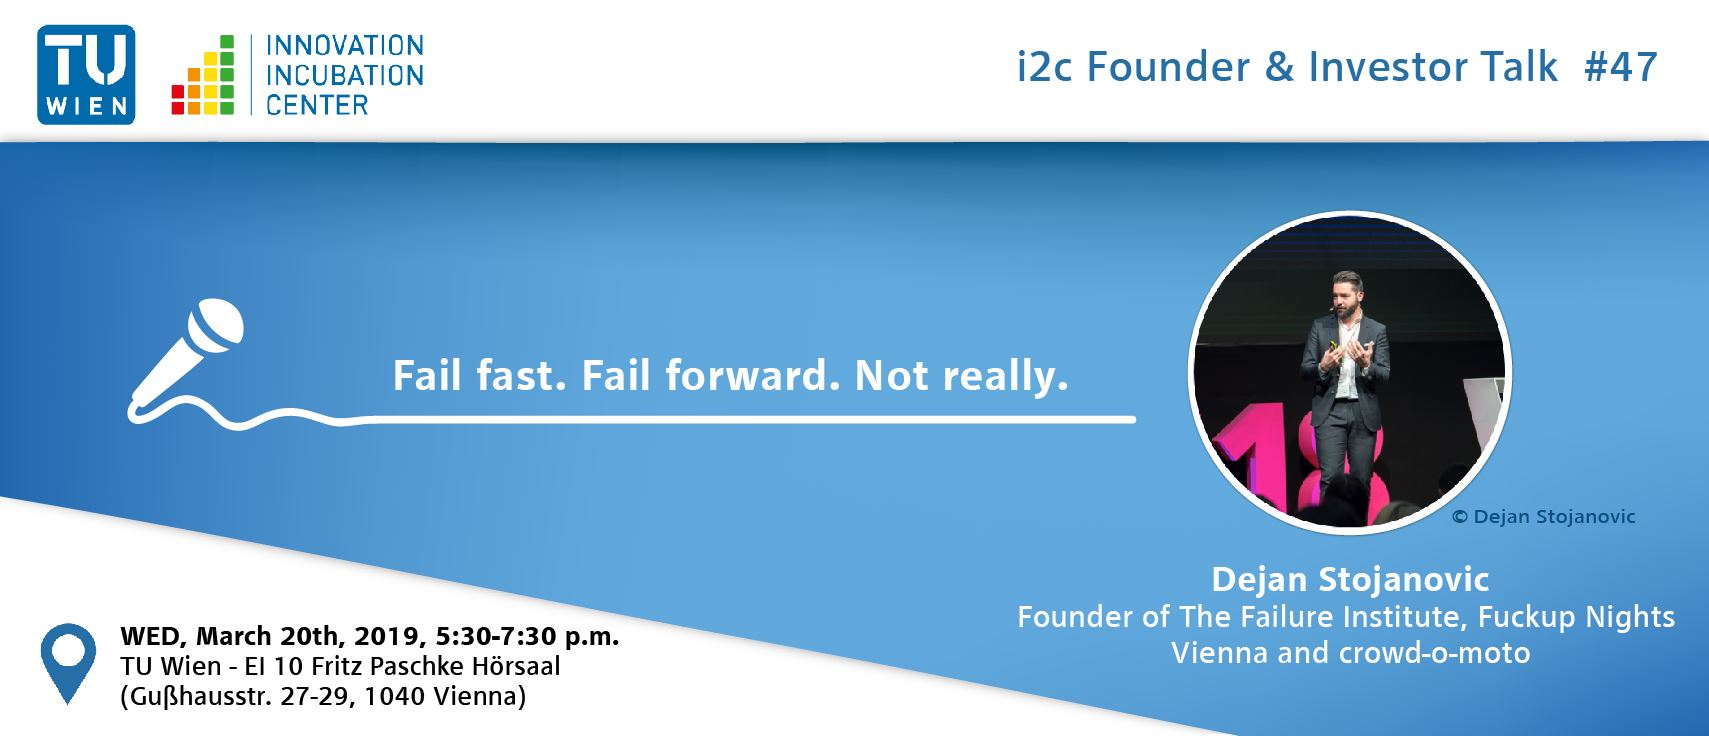 "i²c Founder & Investor Talk #47: ""Fail fast. Fail forward. Not really."" by Dejan Stojanovic"